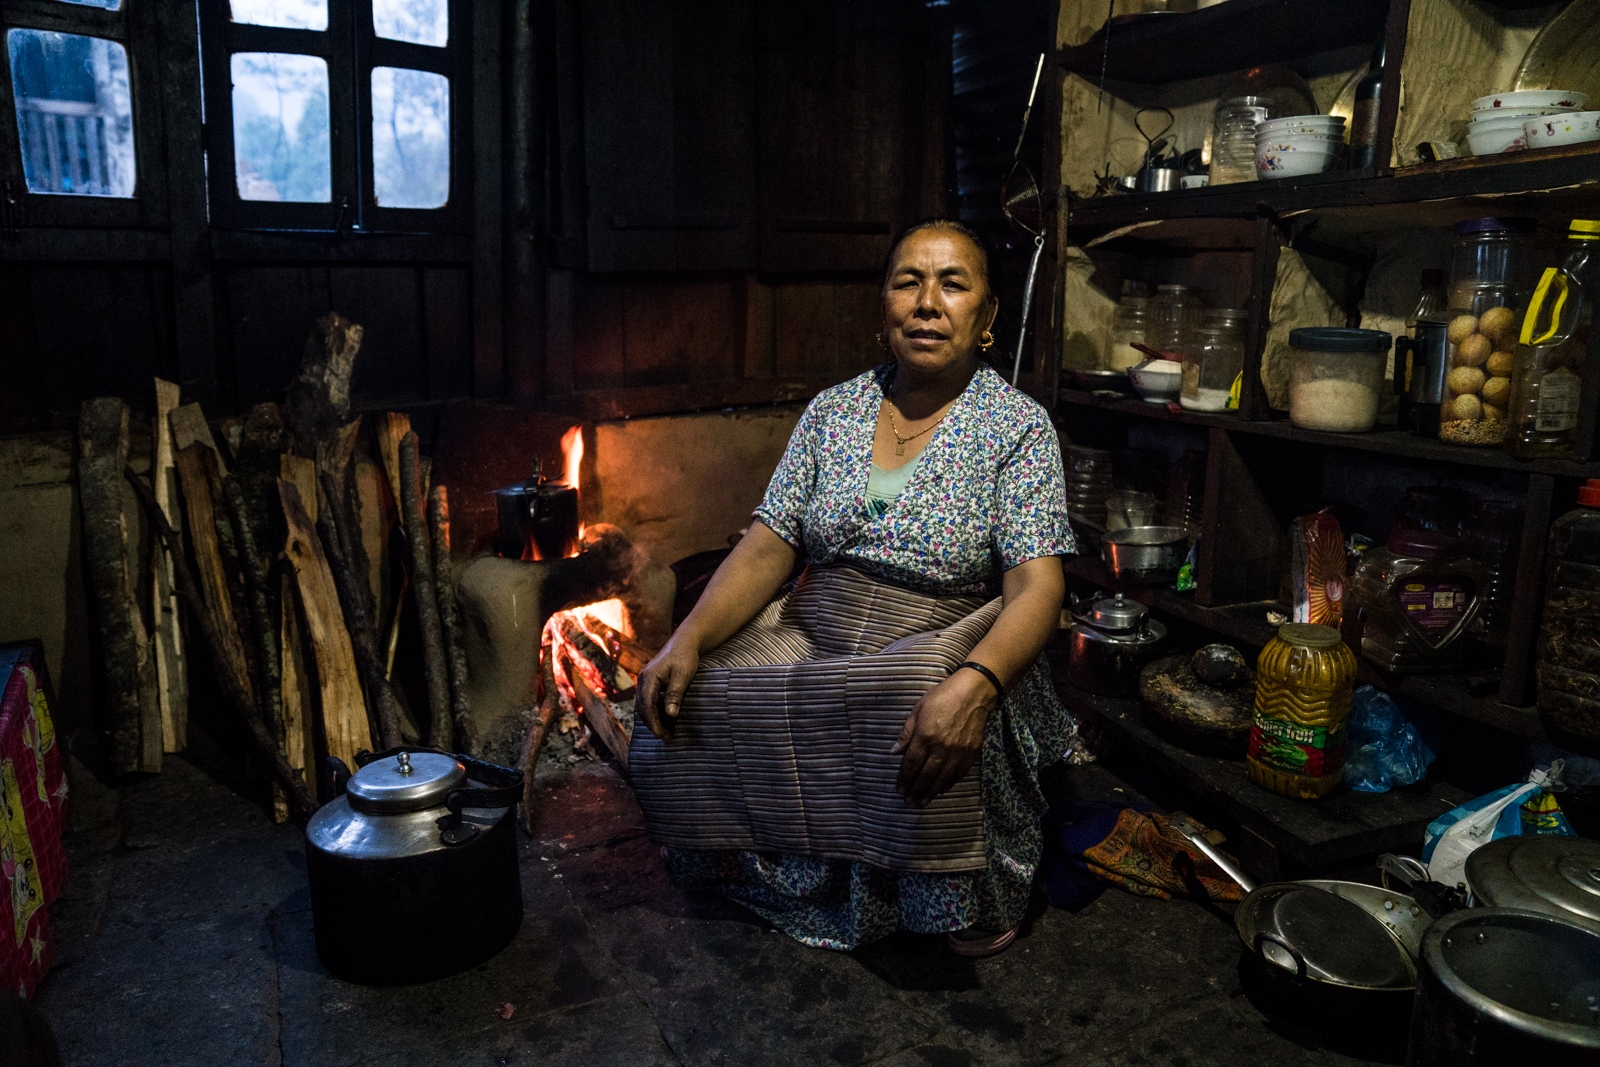 A woman in her kitchen poses for a portrait while cooking dinner.